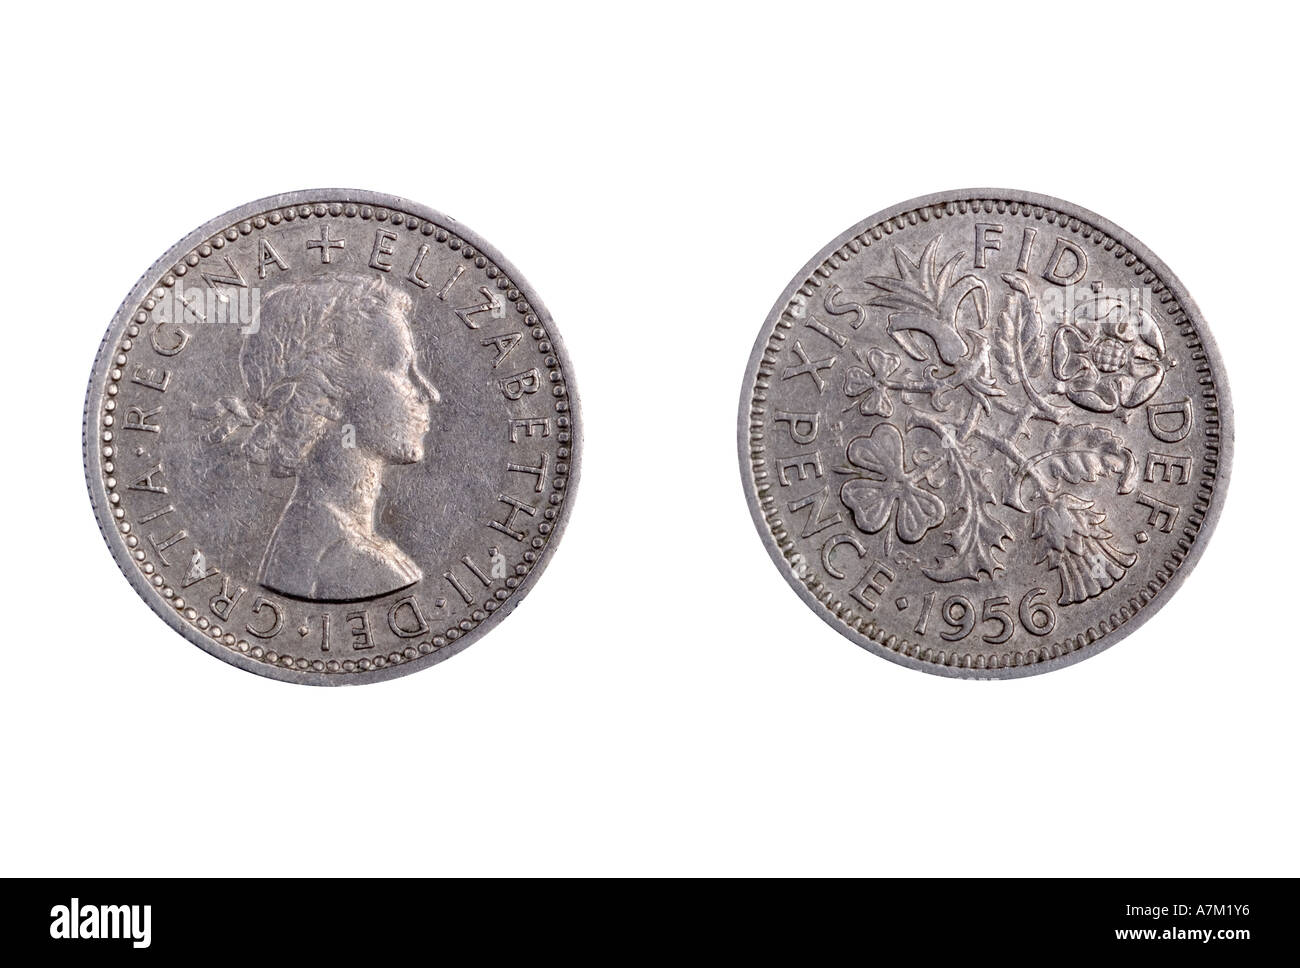 1956 sixpence. Ceased to be legal tender in 1980 - Stock Image